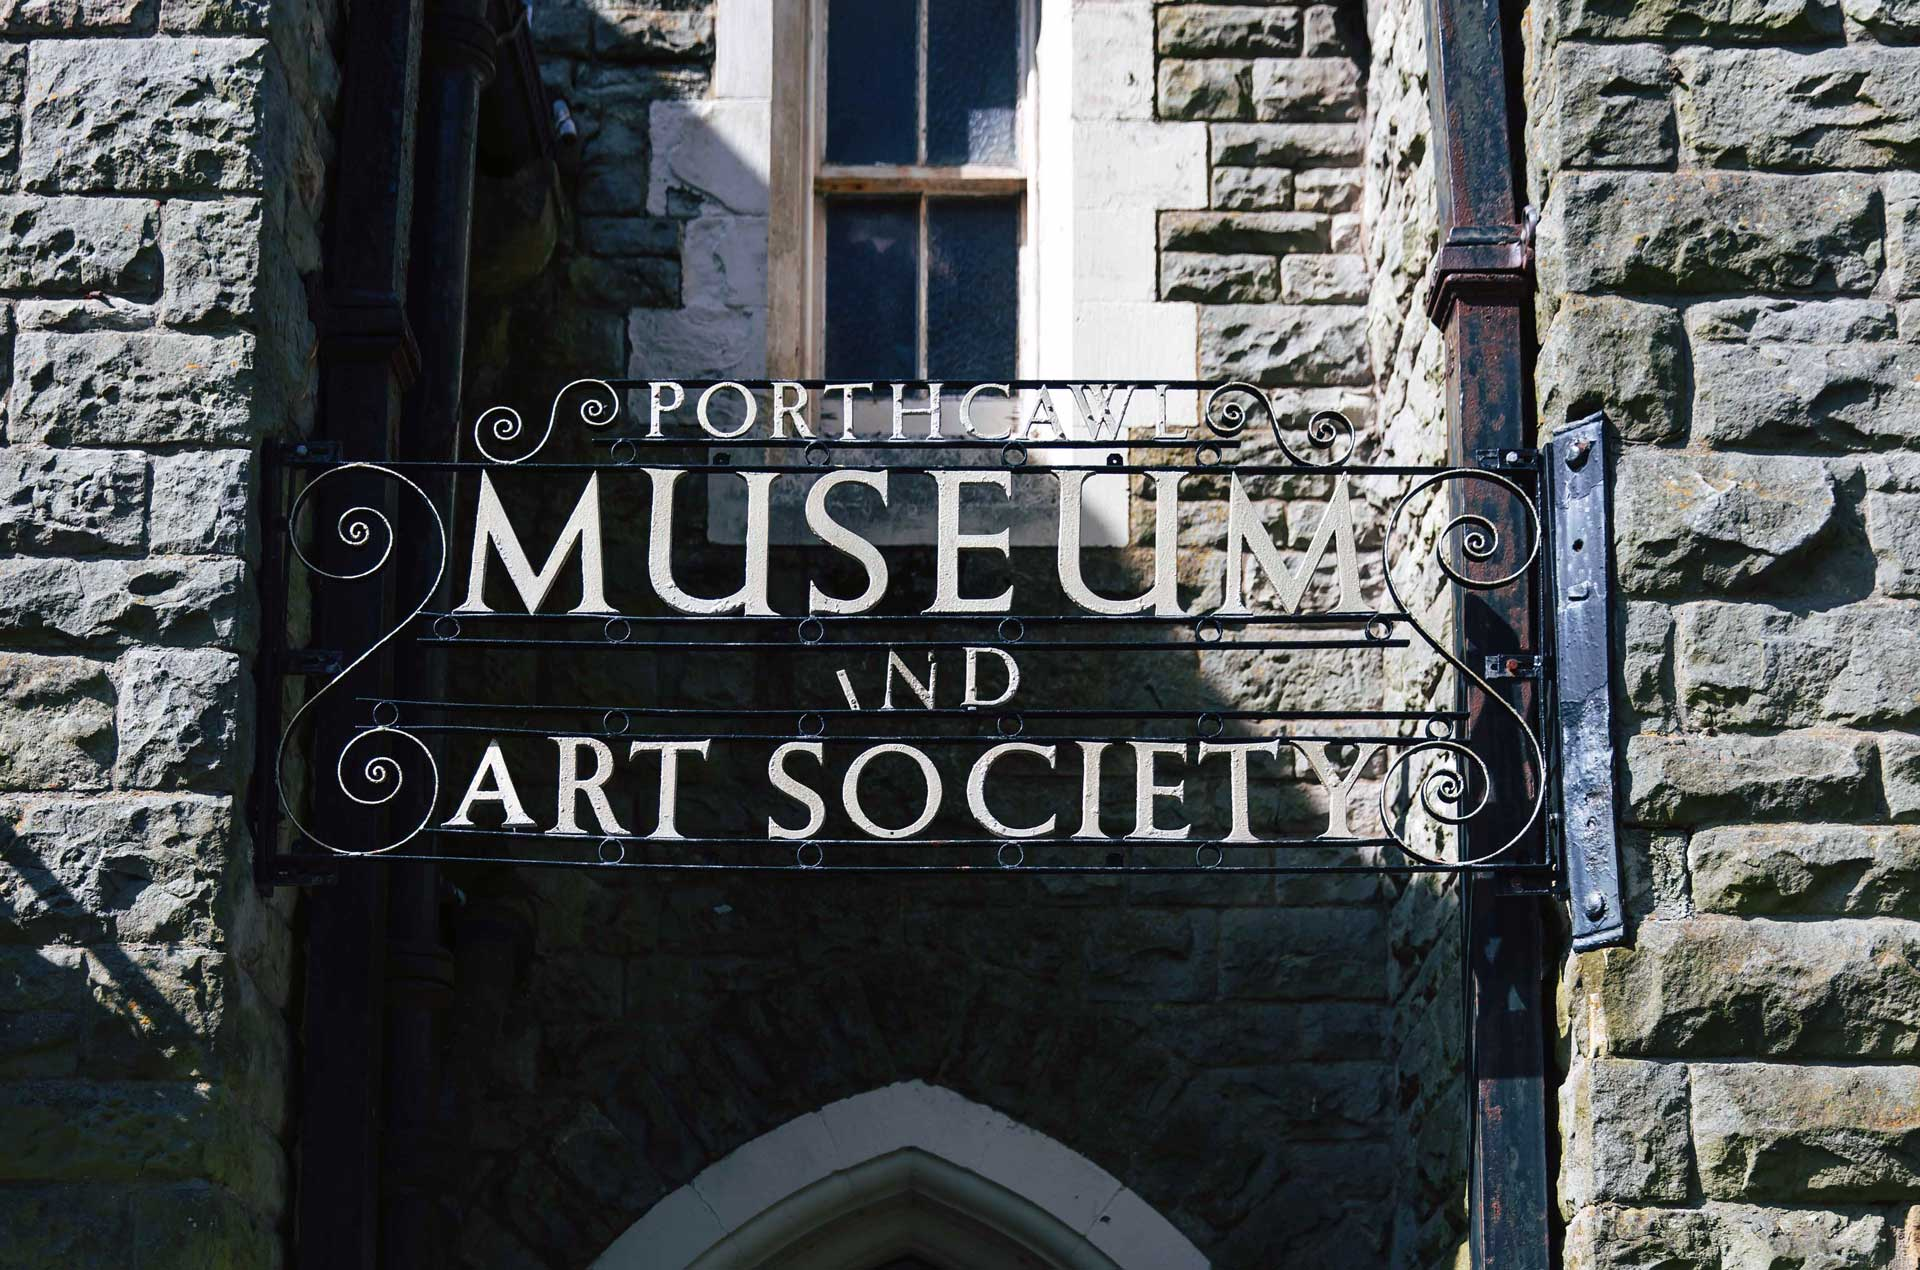 The entrance sign at Porthcawl Museum